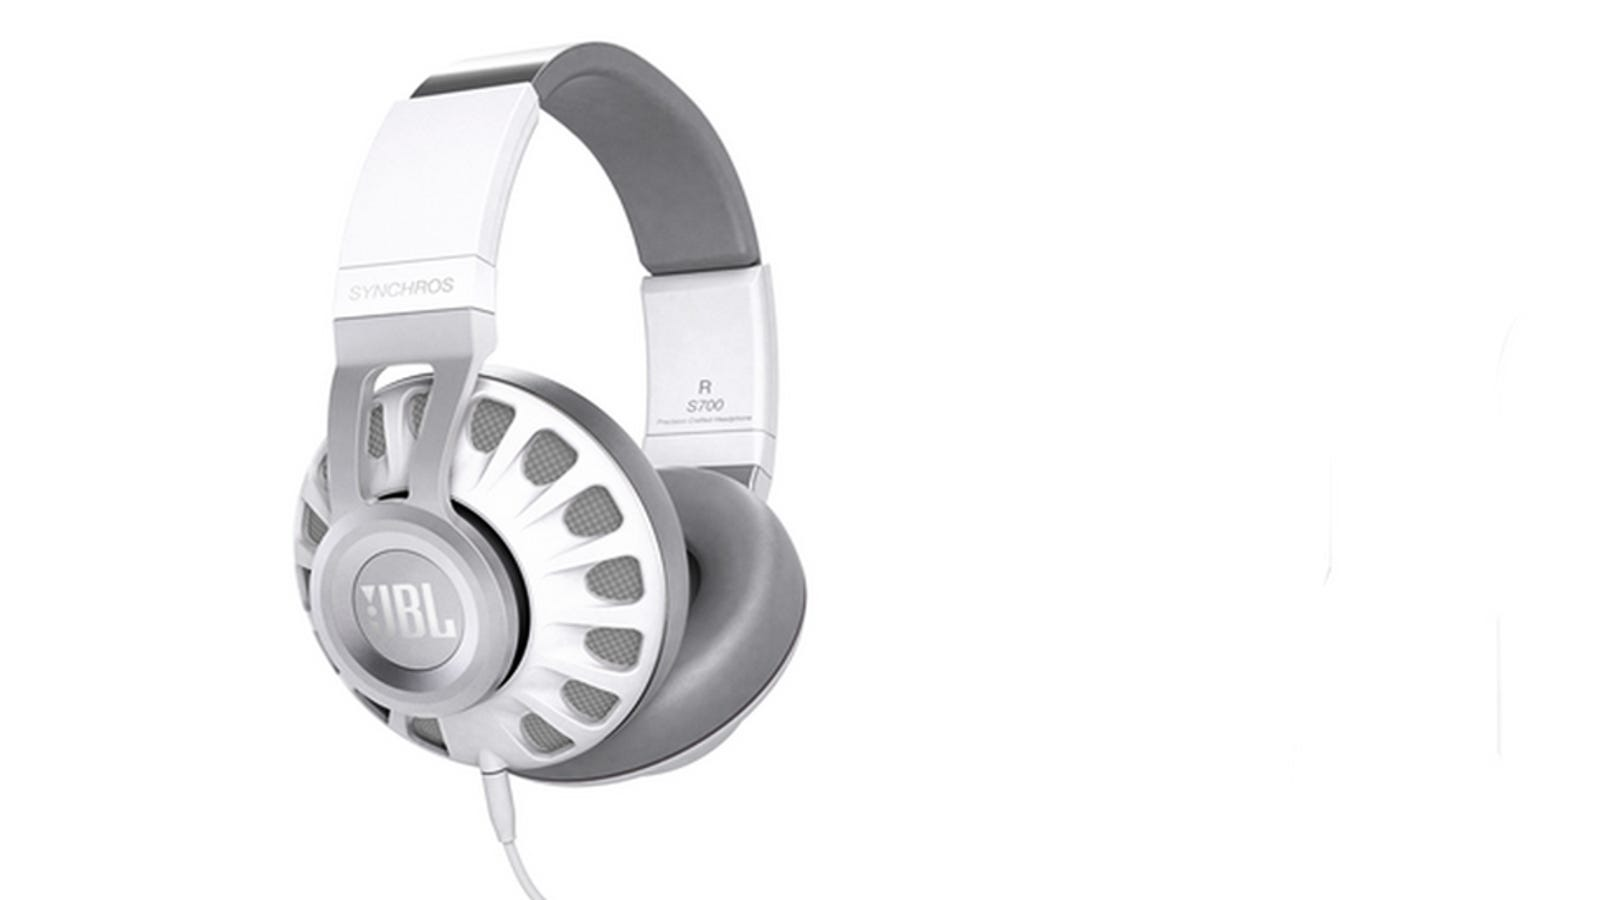 apple wireless headphones sports - JBL's New Headphones Use Pro DSP to Sound Like a Live Performance